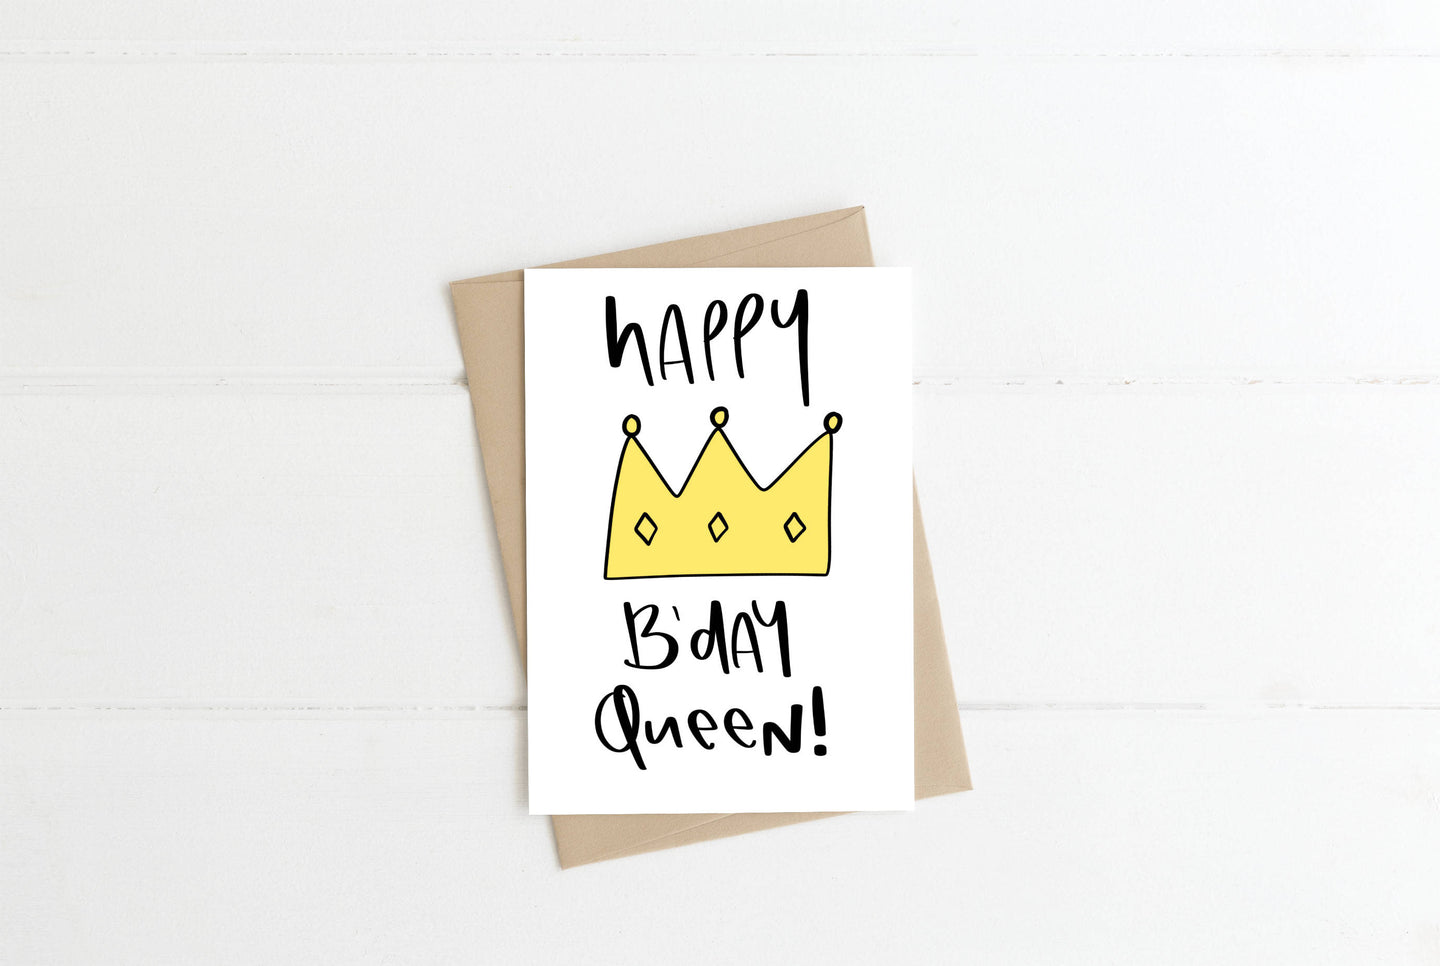 Happy Birthday Queen Greeting Card